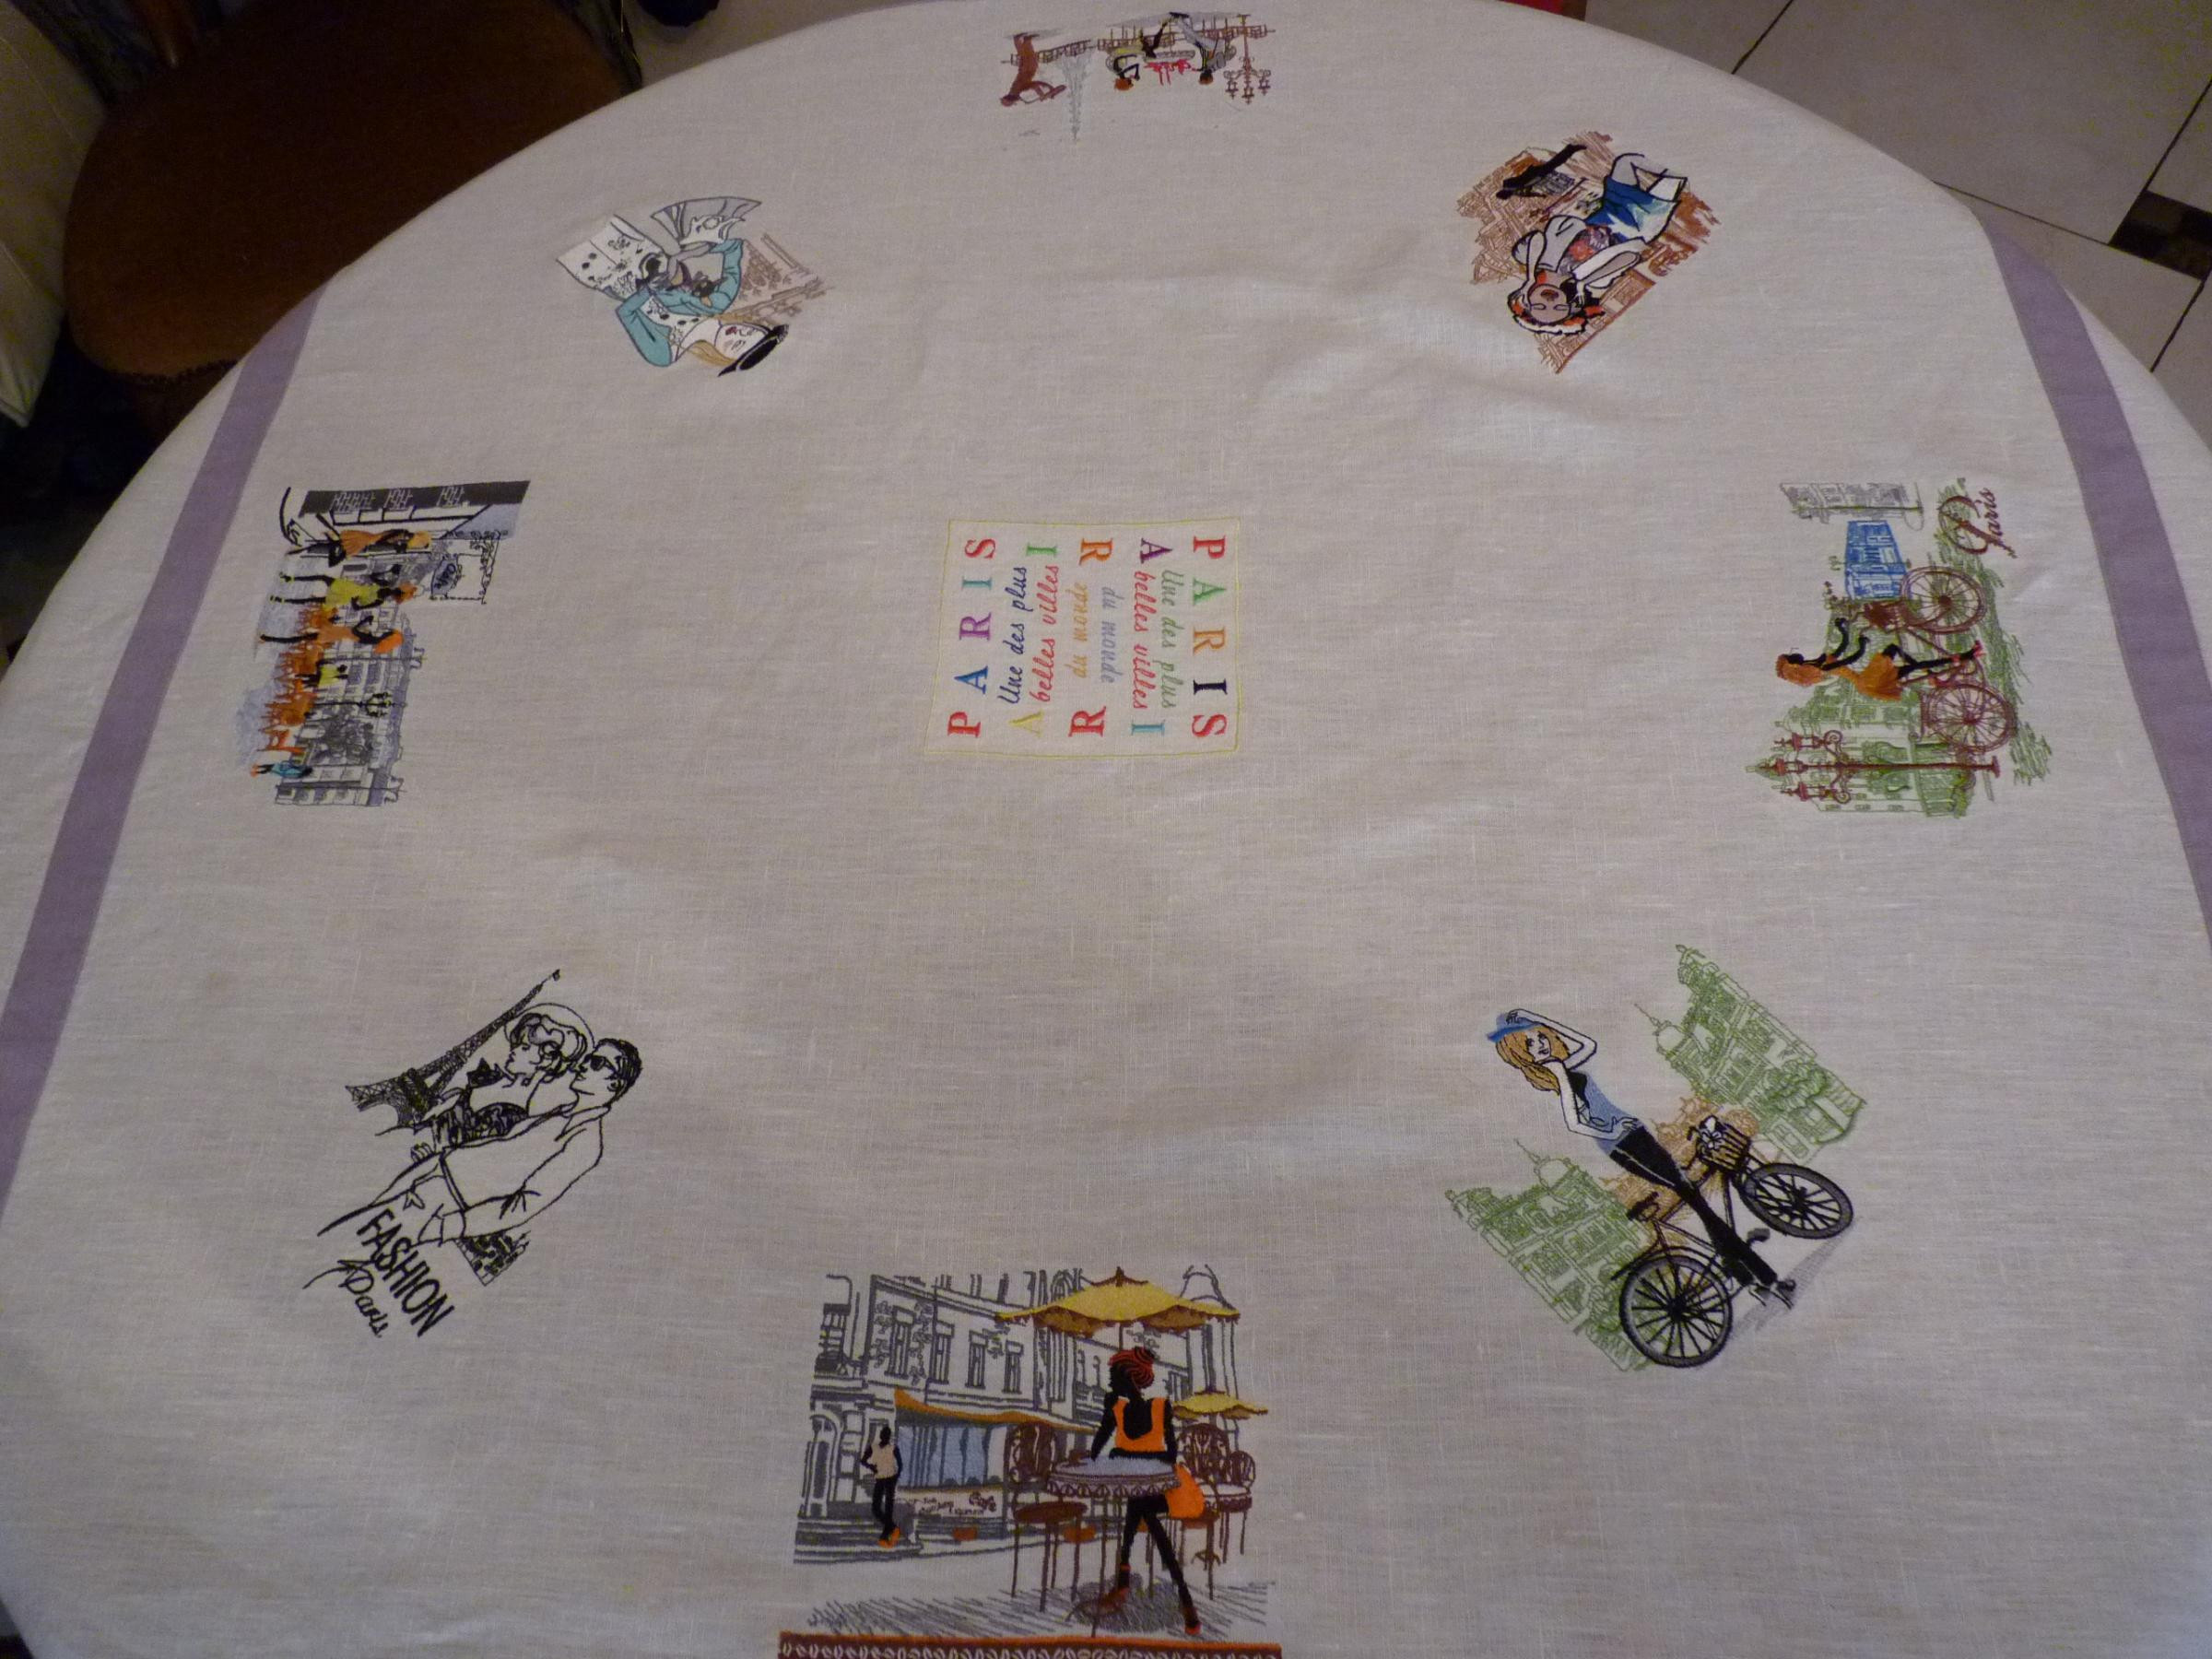 Tablecloth with Paris view embroidery designs